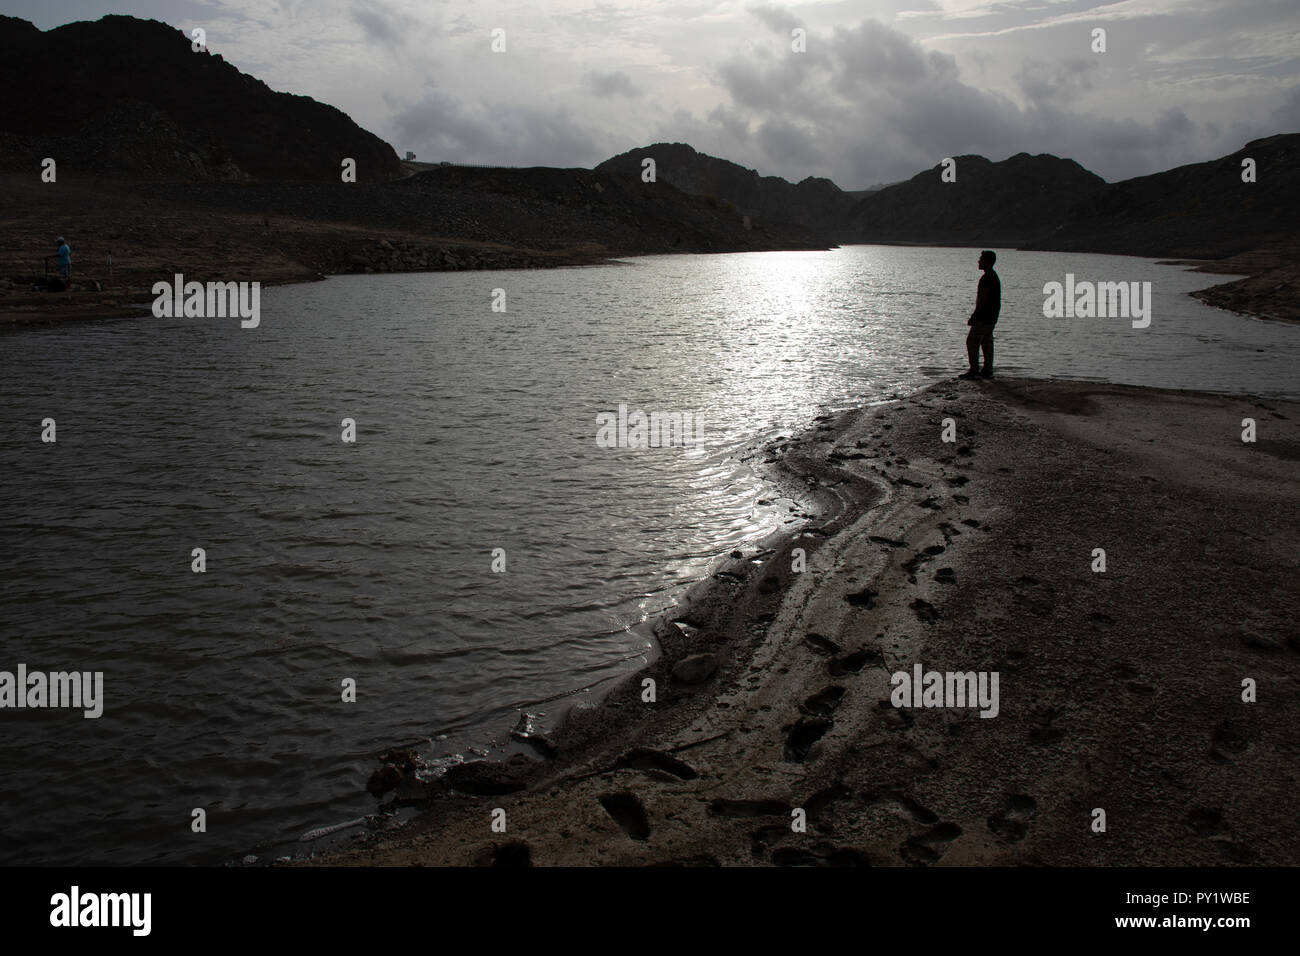 A man standing on a shore thinking about the future. - Stock Image